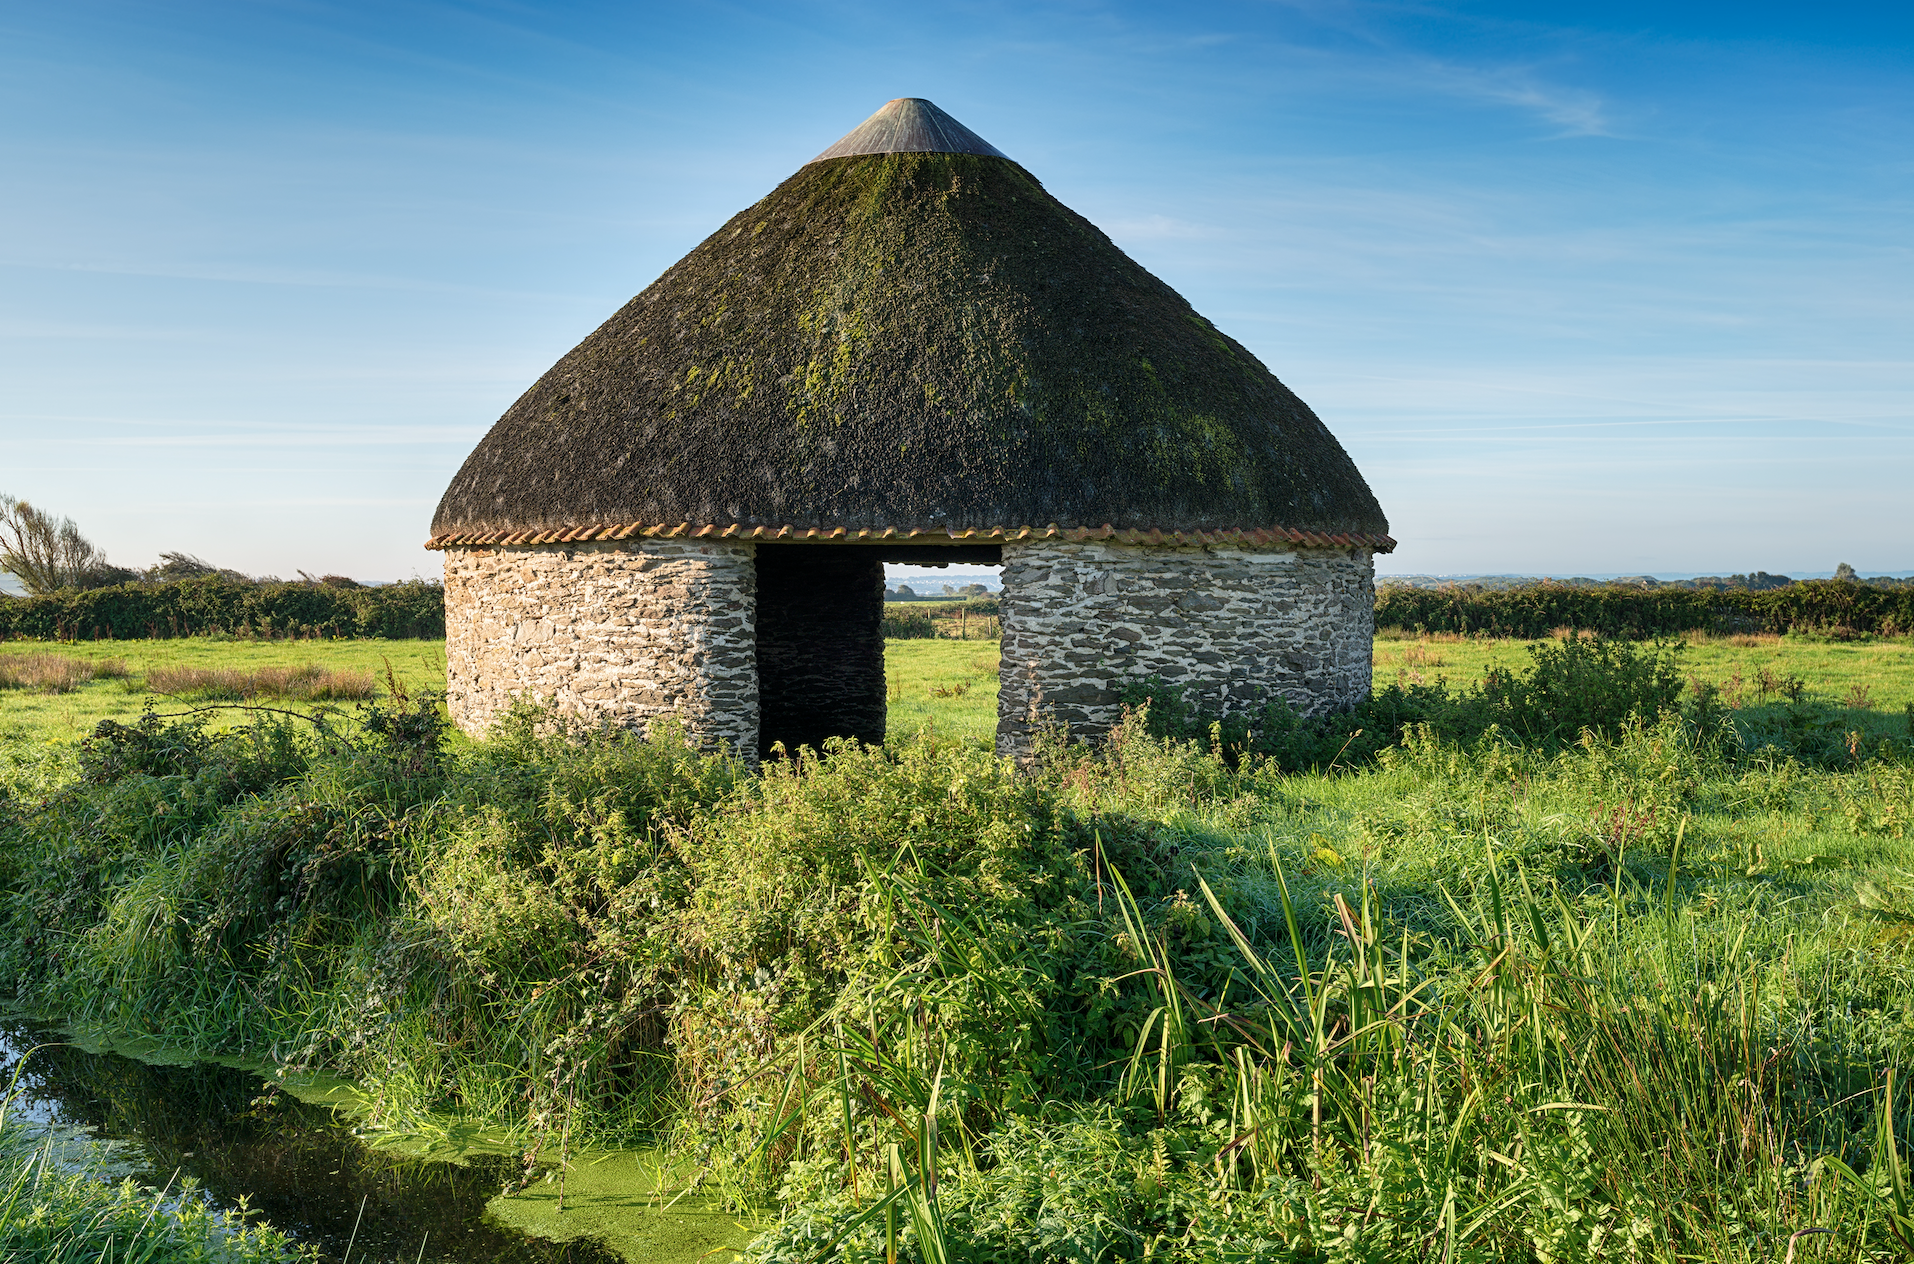 Looking for the Definition of homesteading? We will show you how to homestead practically aNd safely, and what it really takes to do so! Hut in field with straw roof